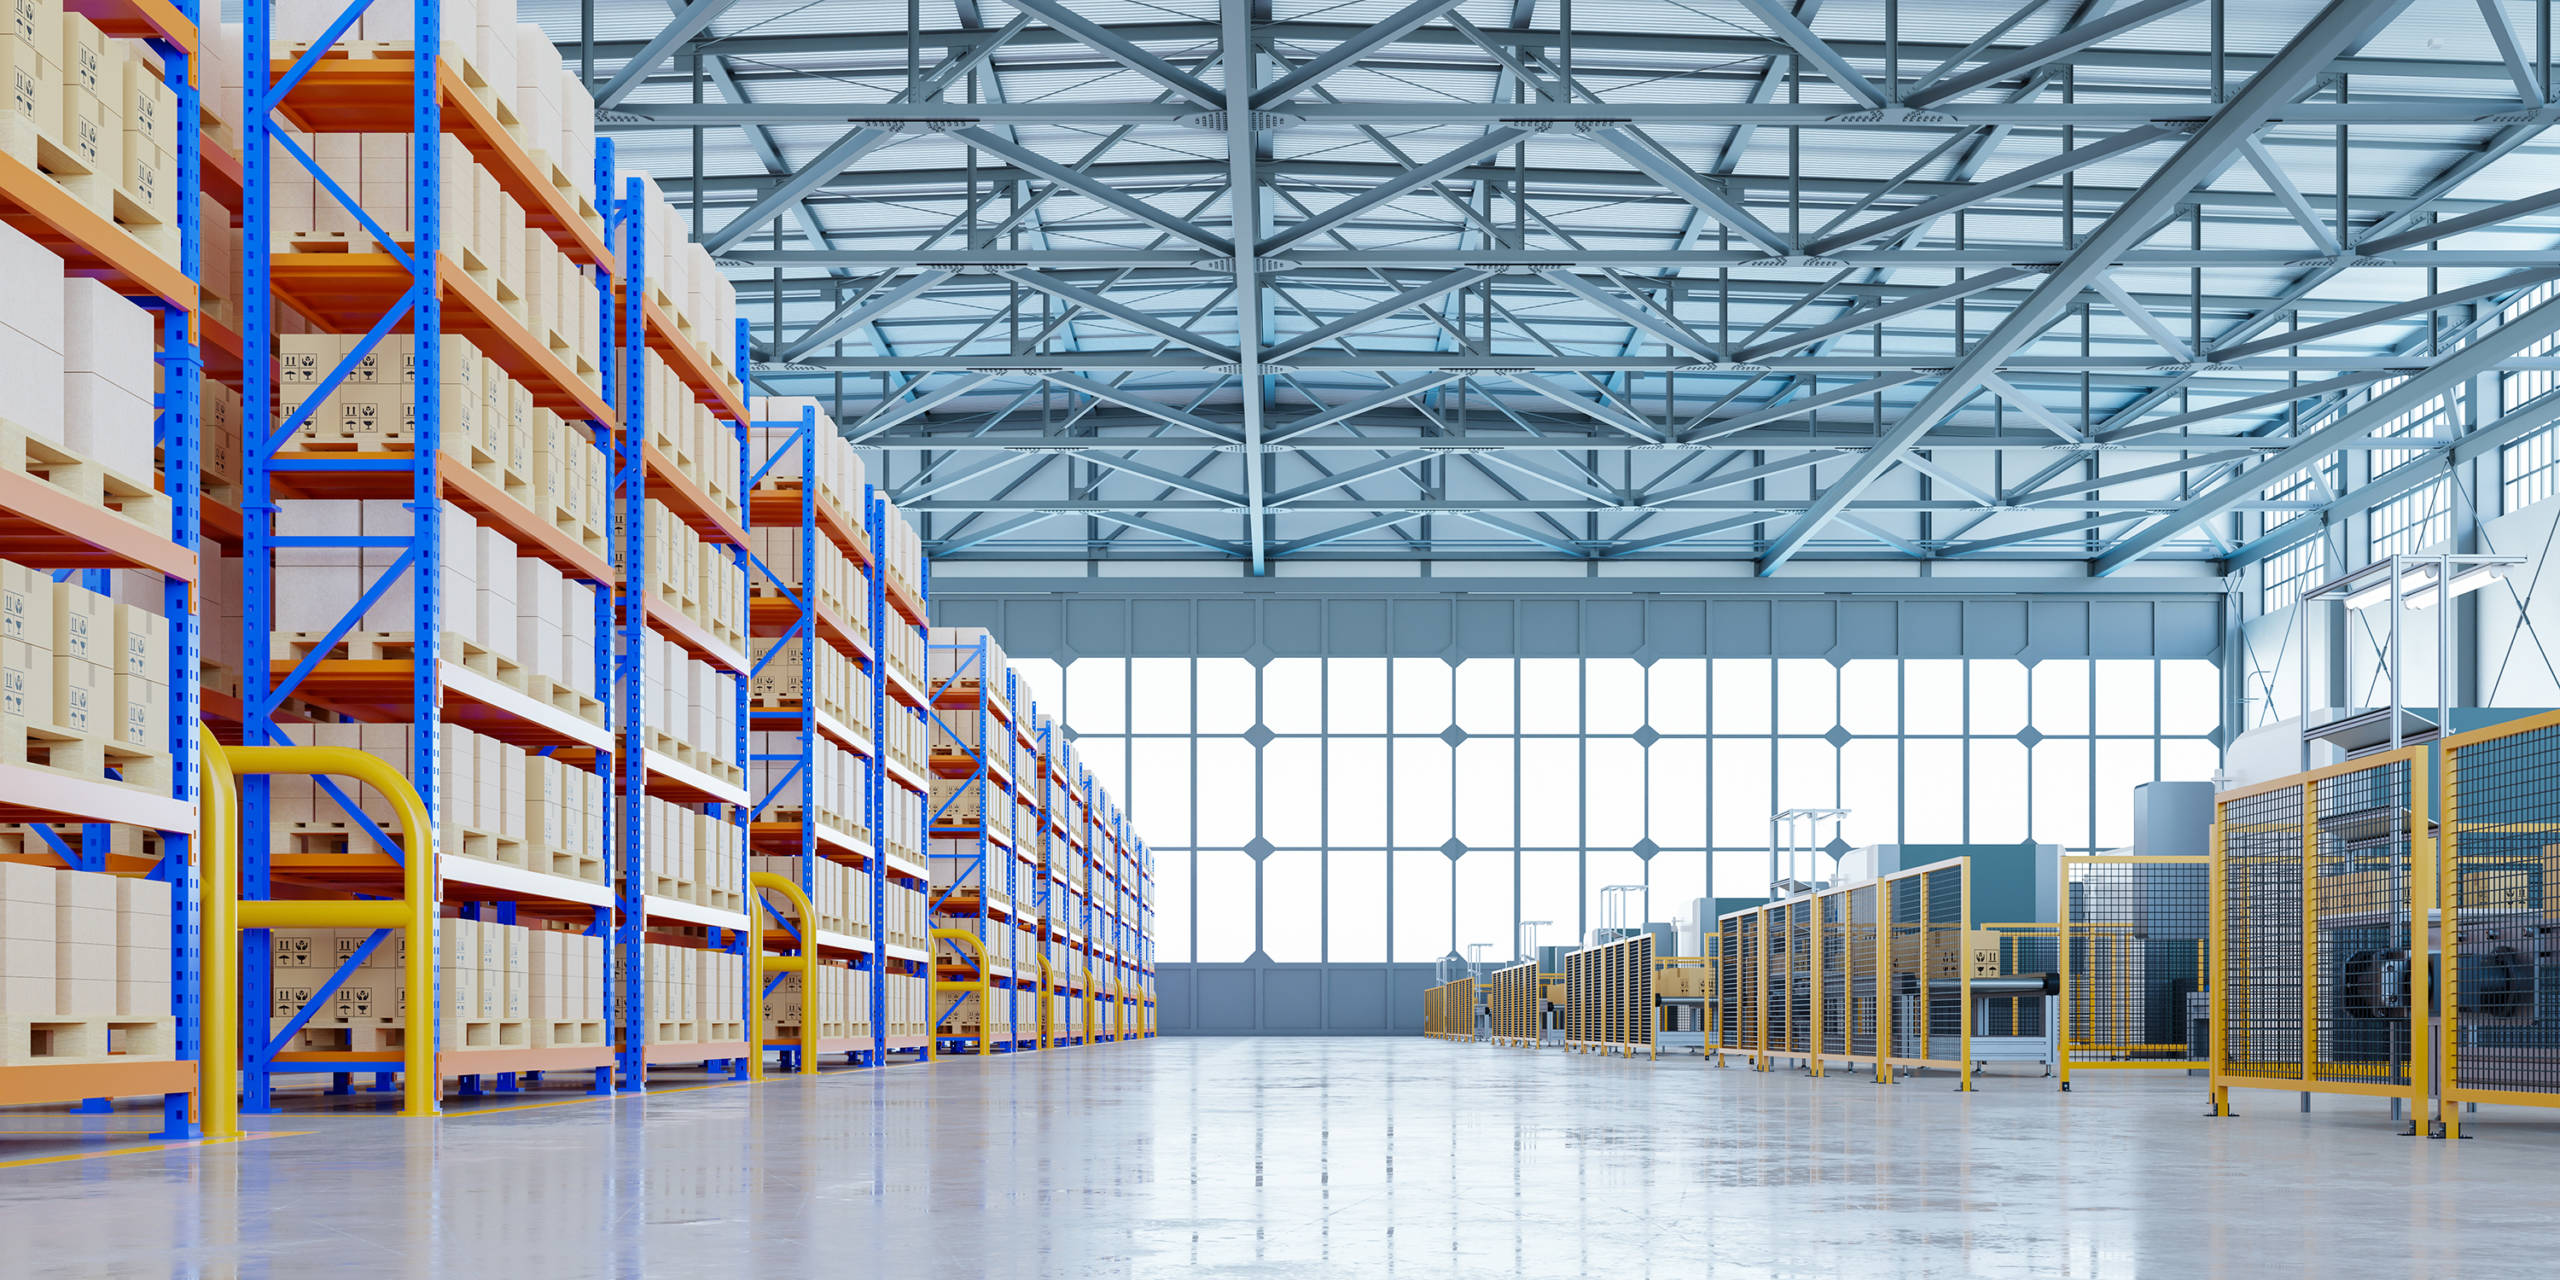 Interior of 3PL warehouse open for storage and additional warehousing services.